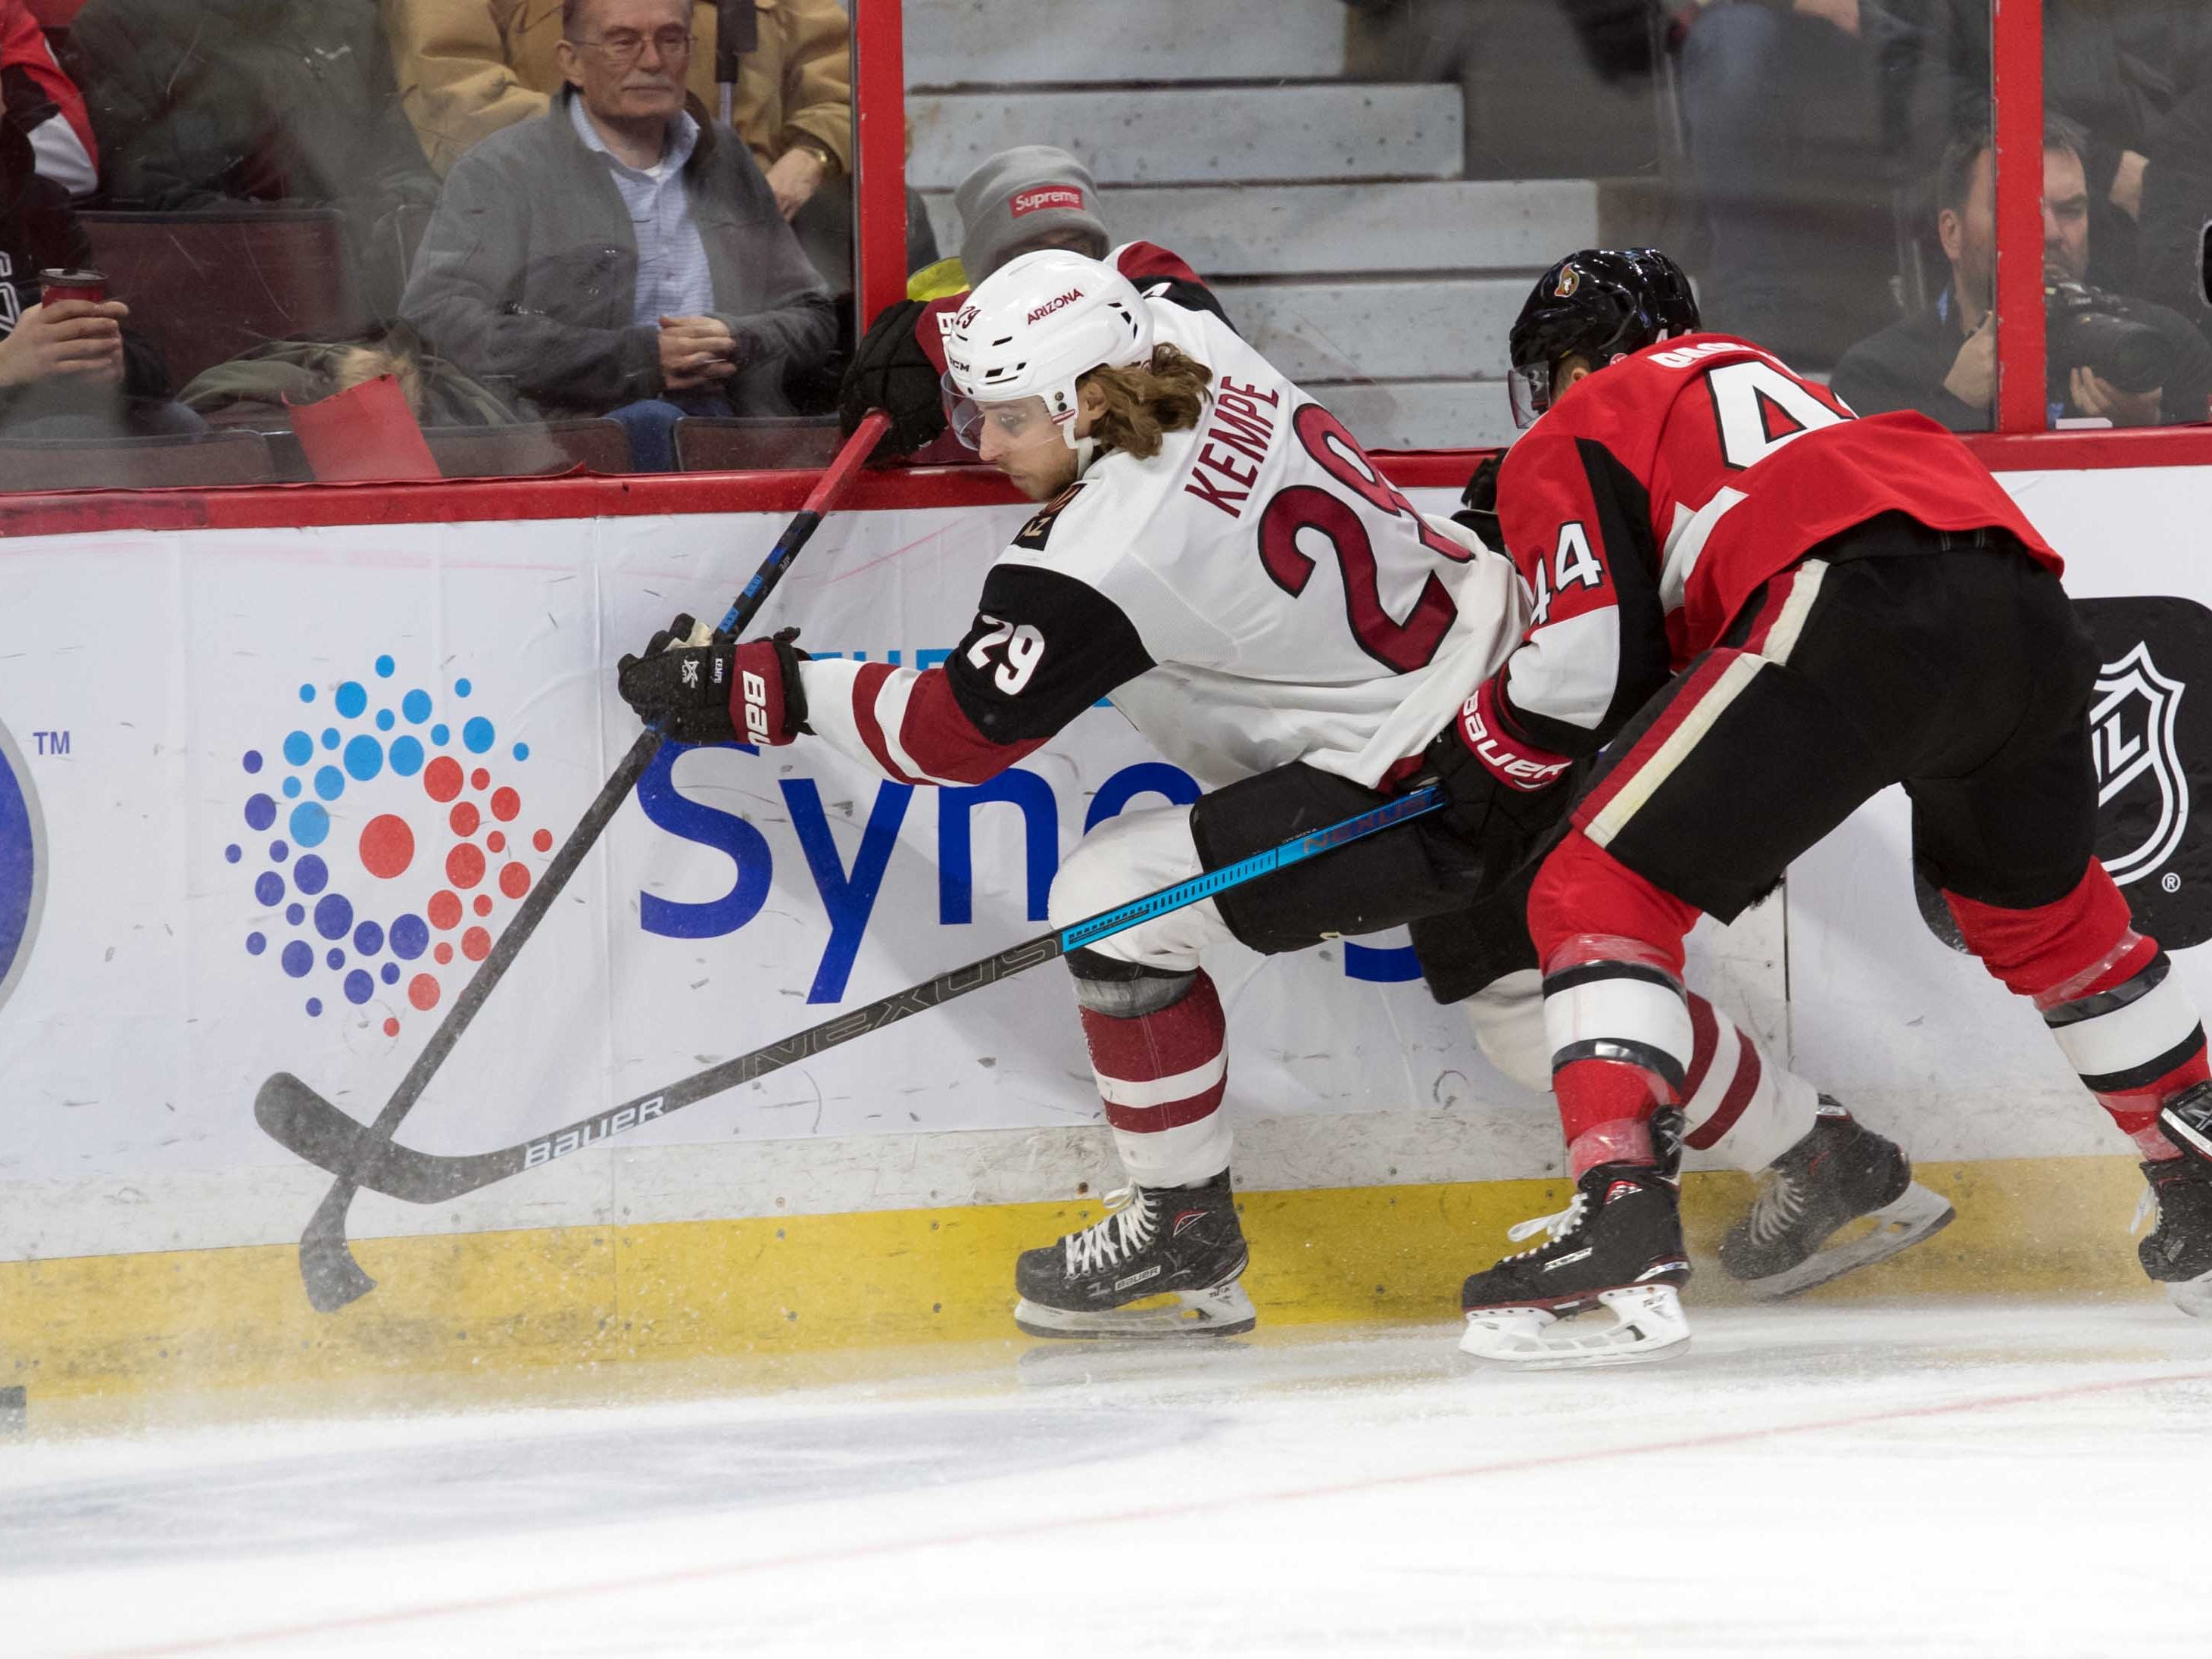 Jan 22, 2019; Ottawa, Ontario, CAN; Arizona Coyotes right wing Mario Kempe (29) battles with Ottawa Senators center Jean-Gabriel Pageau (44) in the first period at the Canadian Tire Centre. Mandatory Credit: Marc DesRosiers-USA TODAY Sports